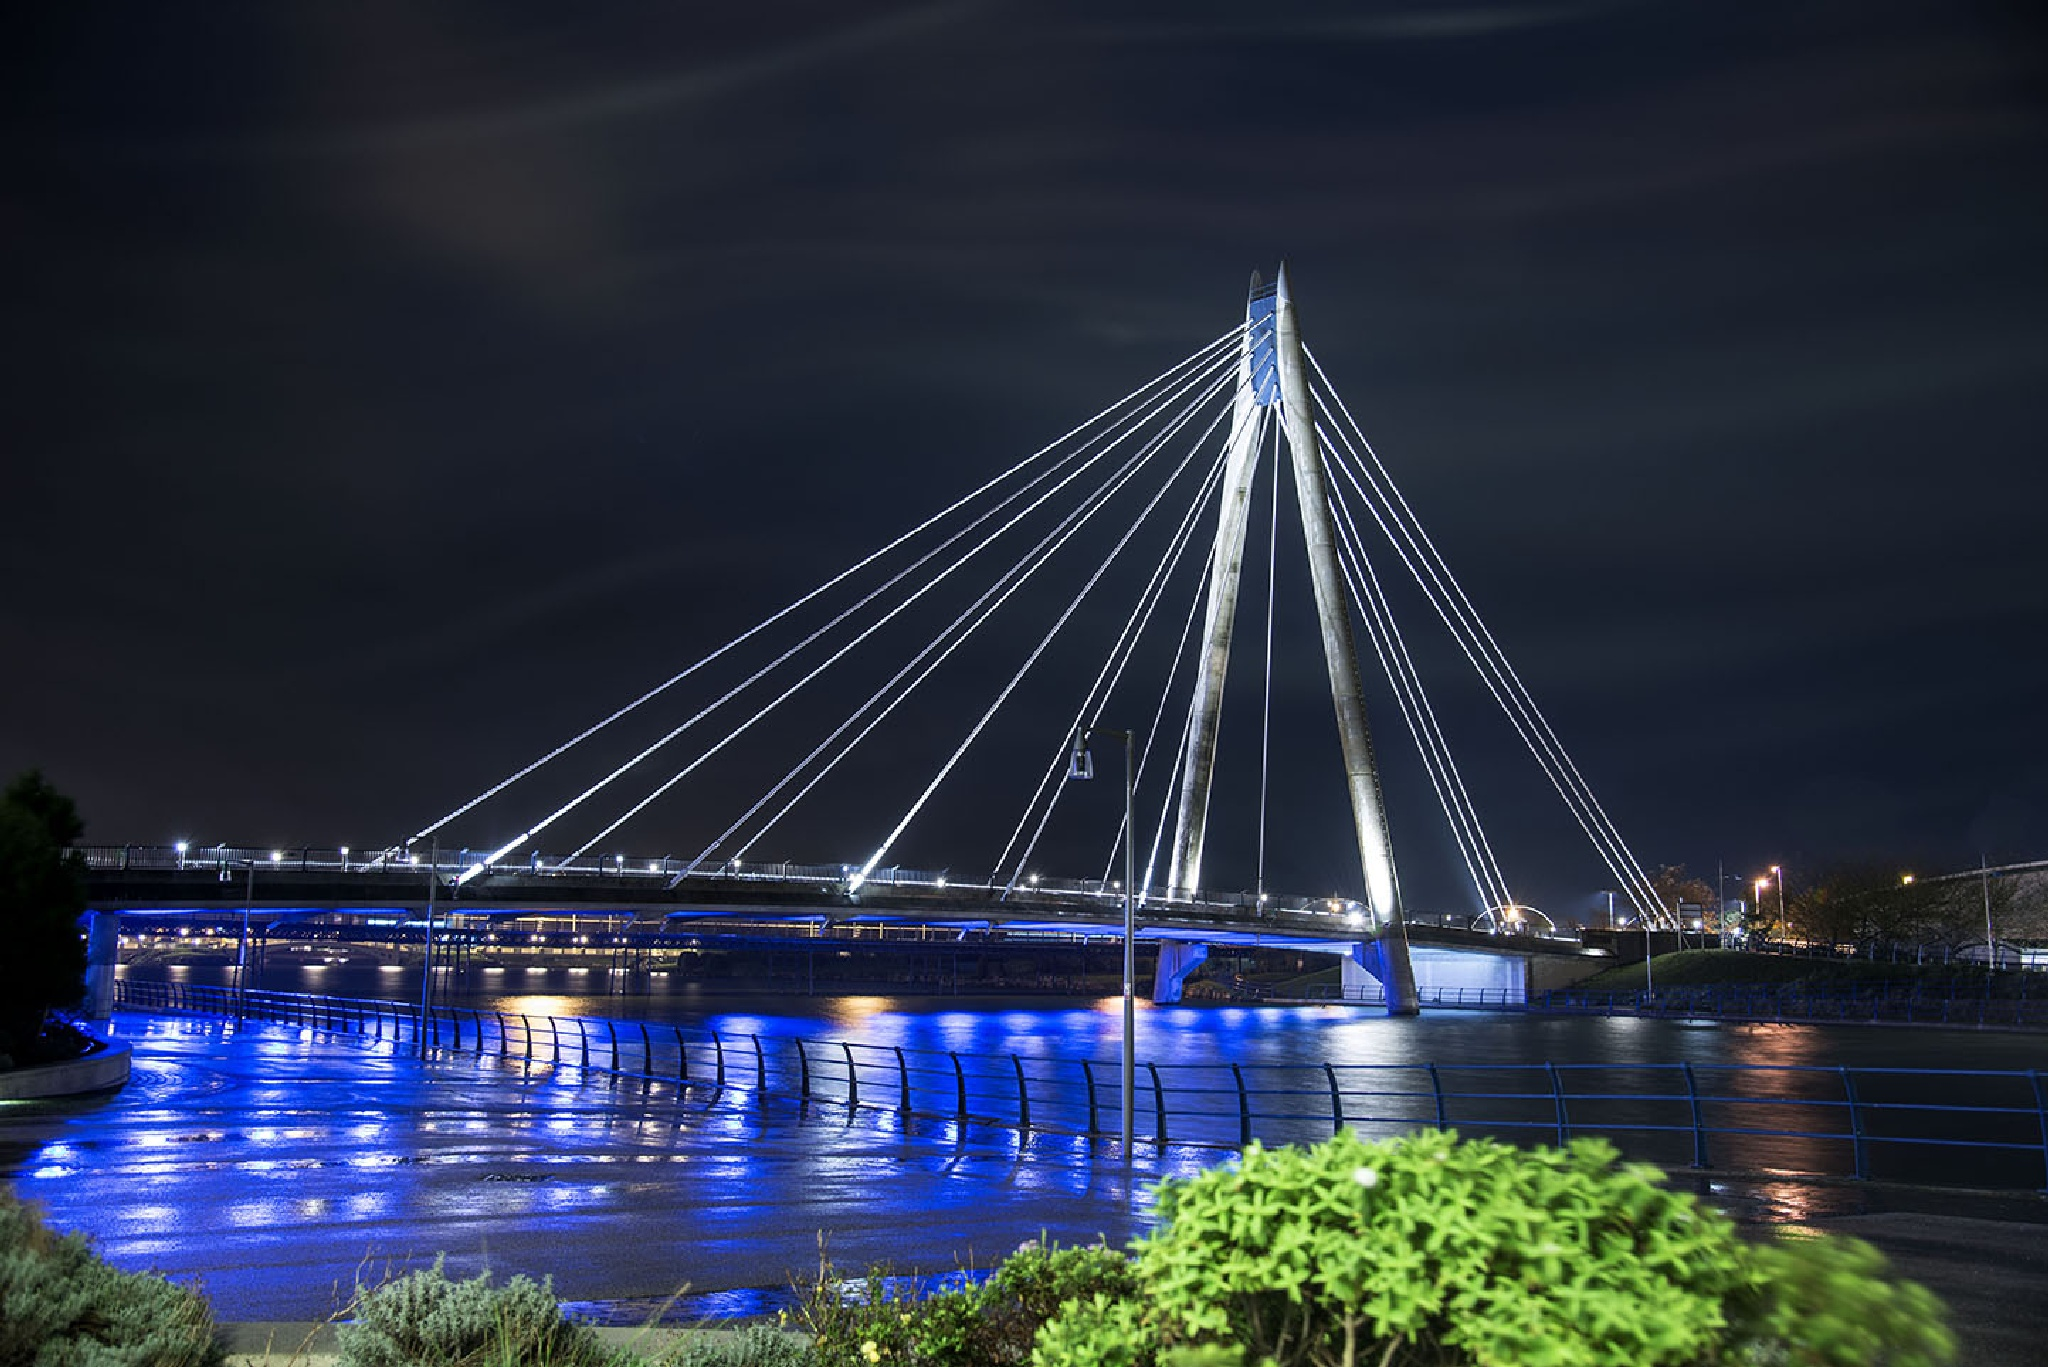 New Bridge in Southport Lancashire. by Chris Scopes